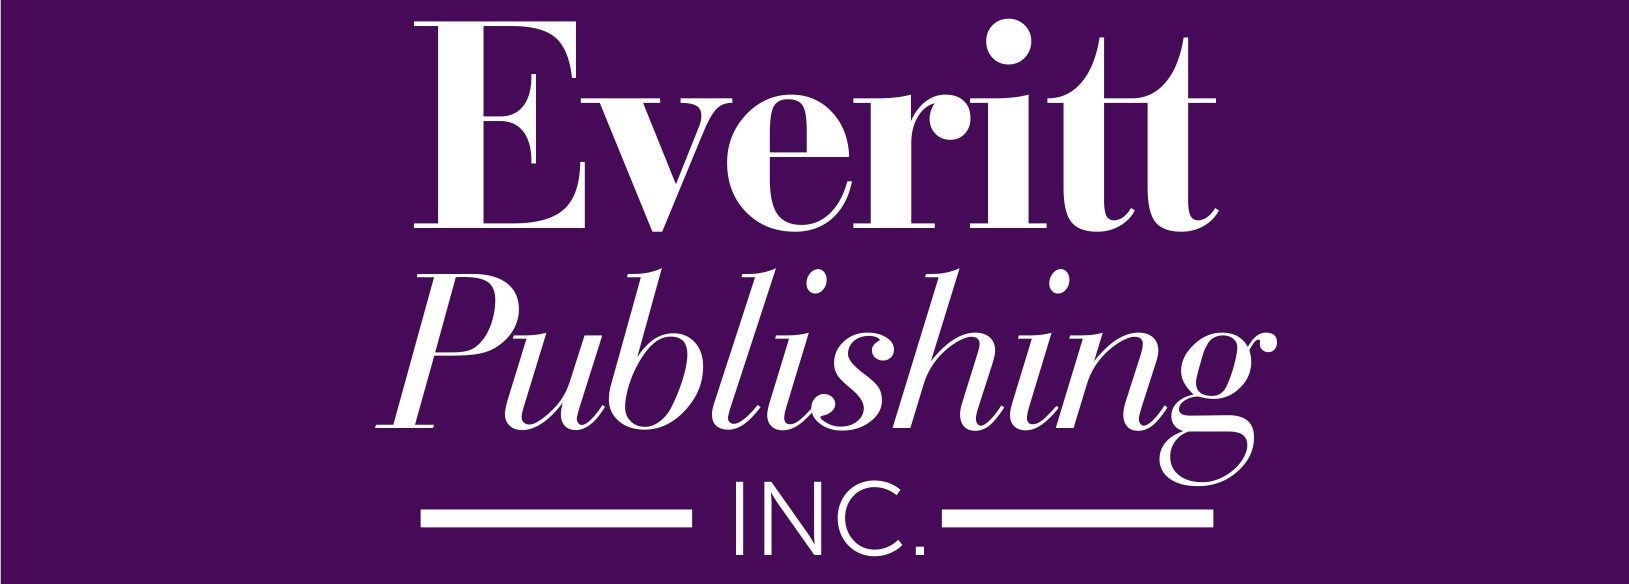 Everitt Publishing Inc